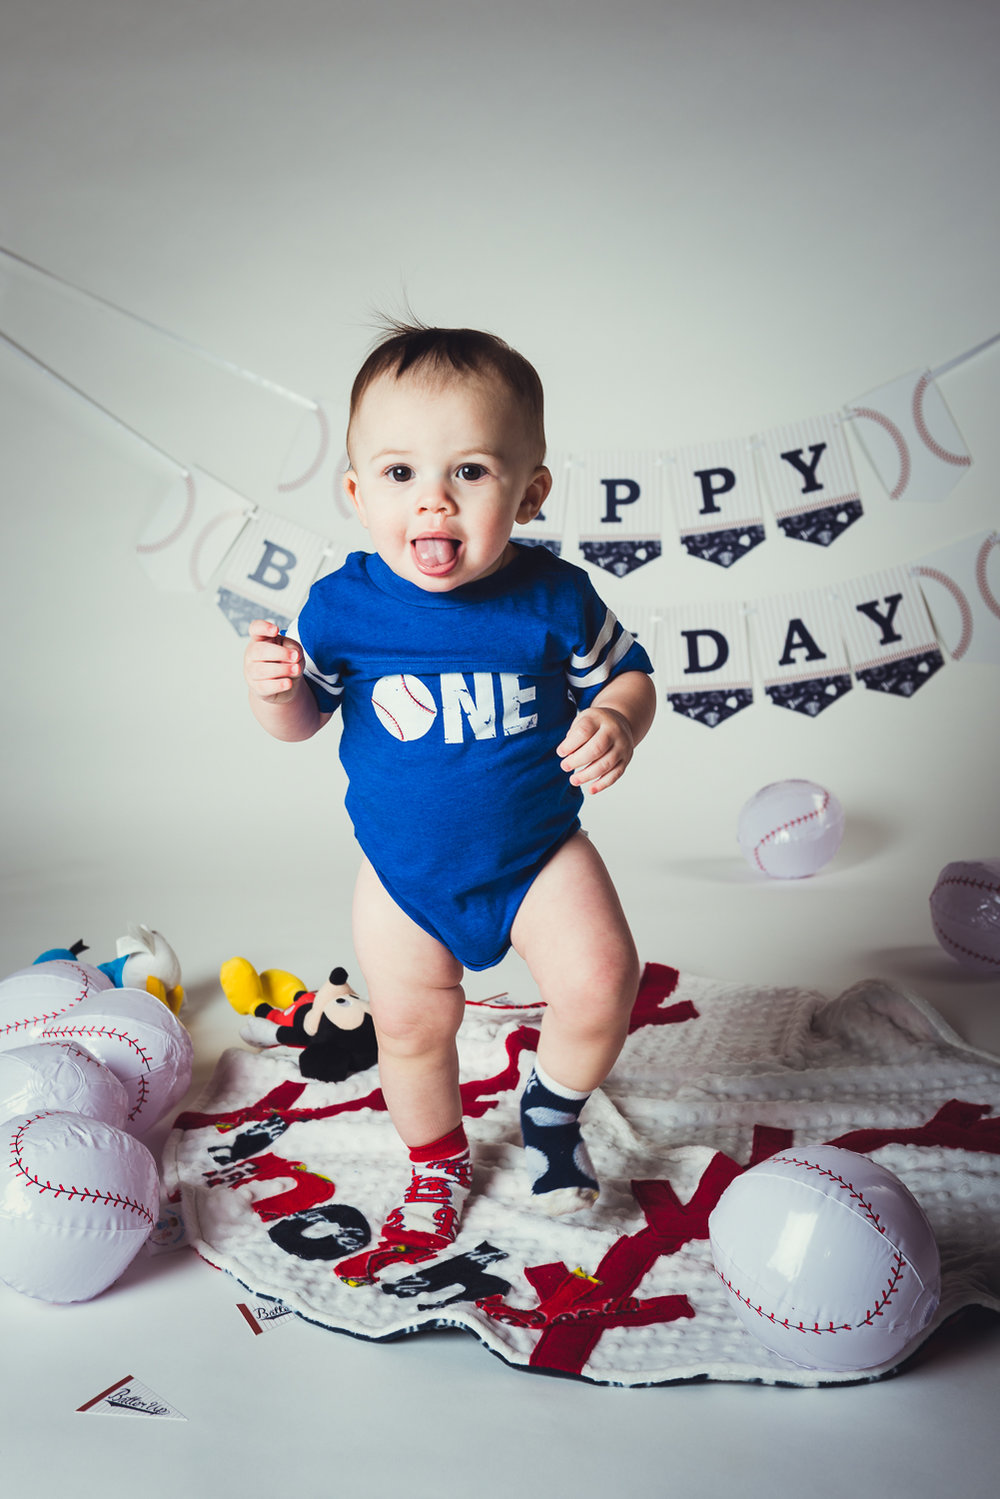 20171217 - Timmys First Bday Portraits LR-4.jpg